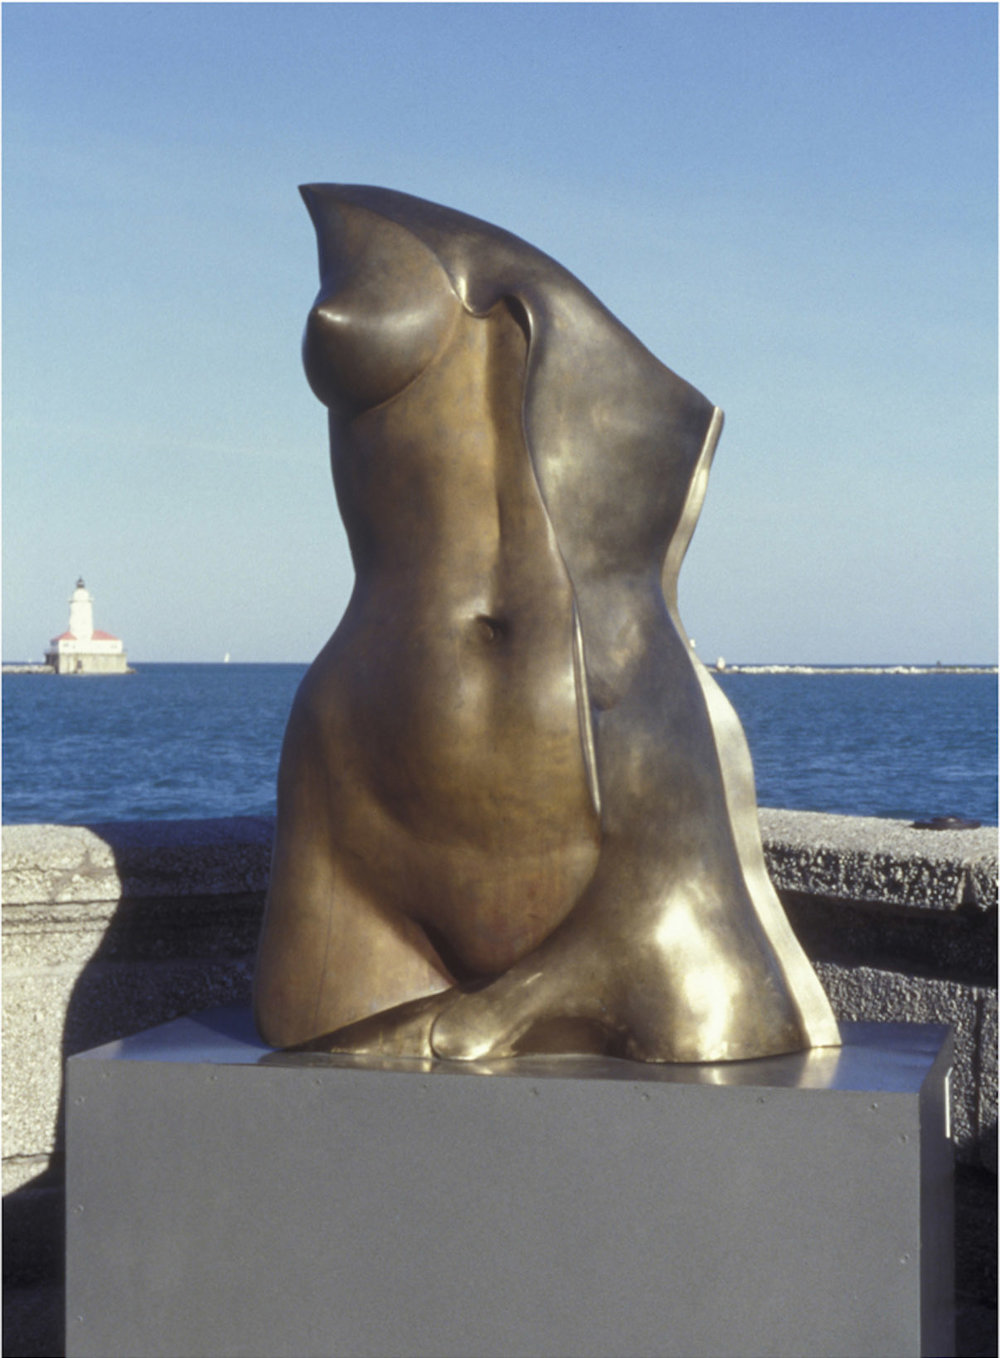 Res  - 8' X 4' X 3' in cast bronze (1999) at Navy Pier in Chicago, IL